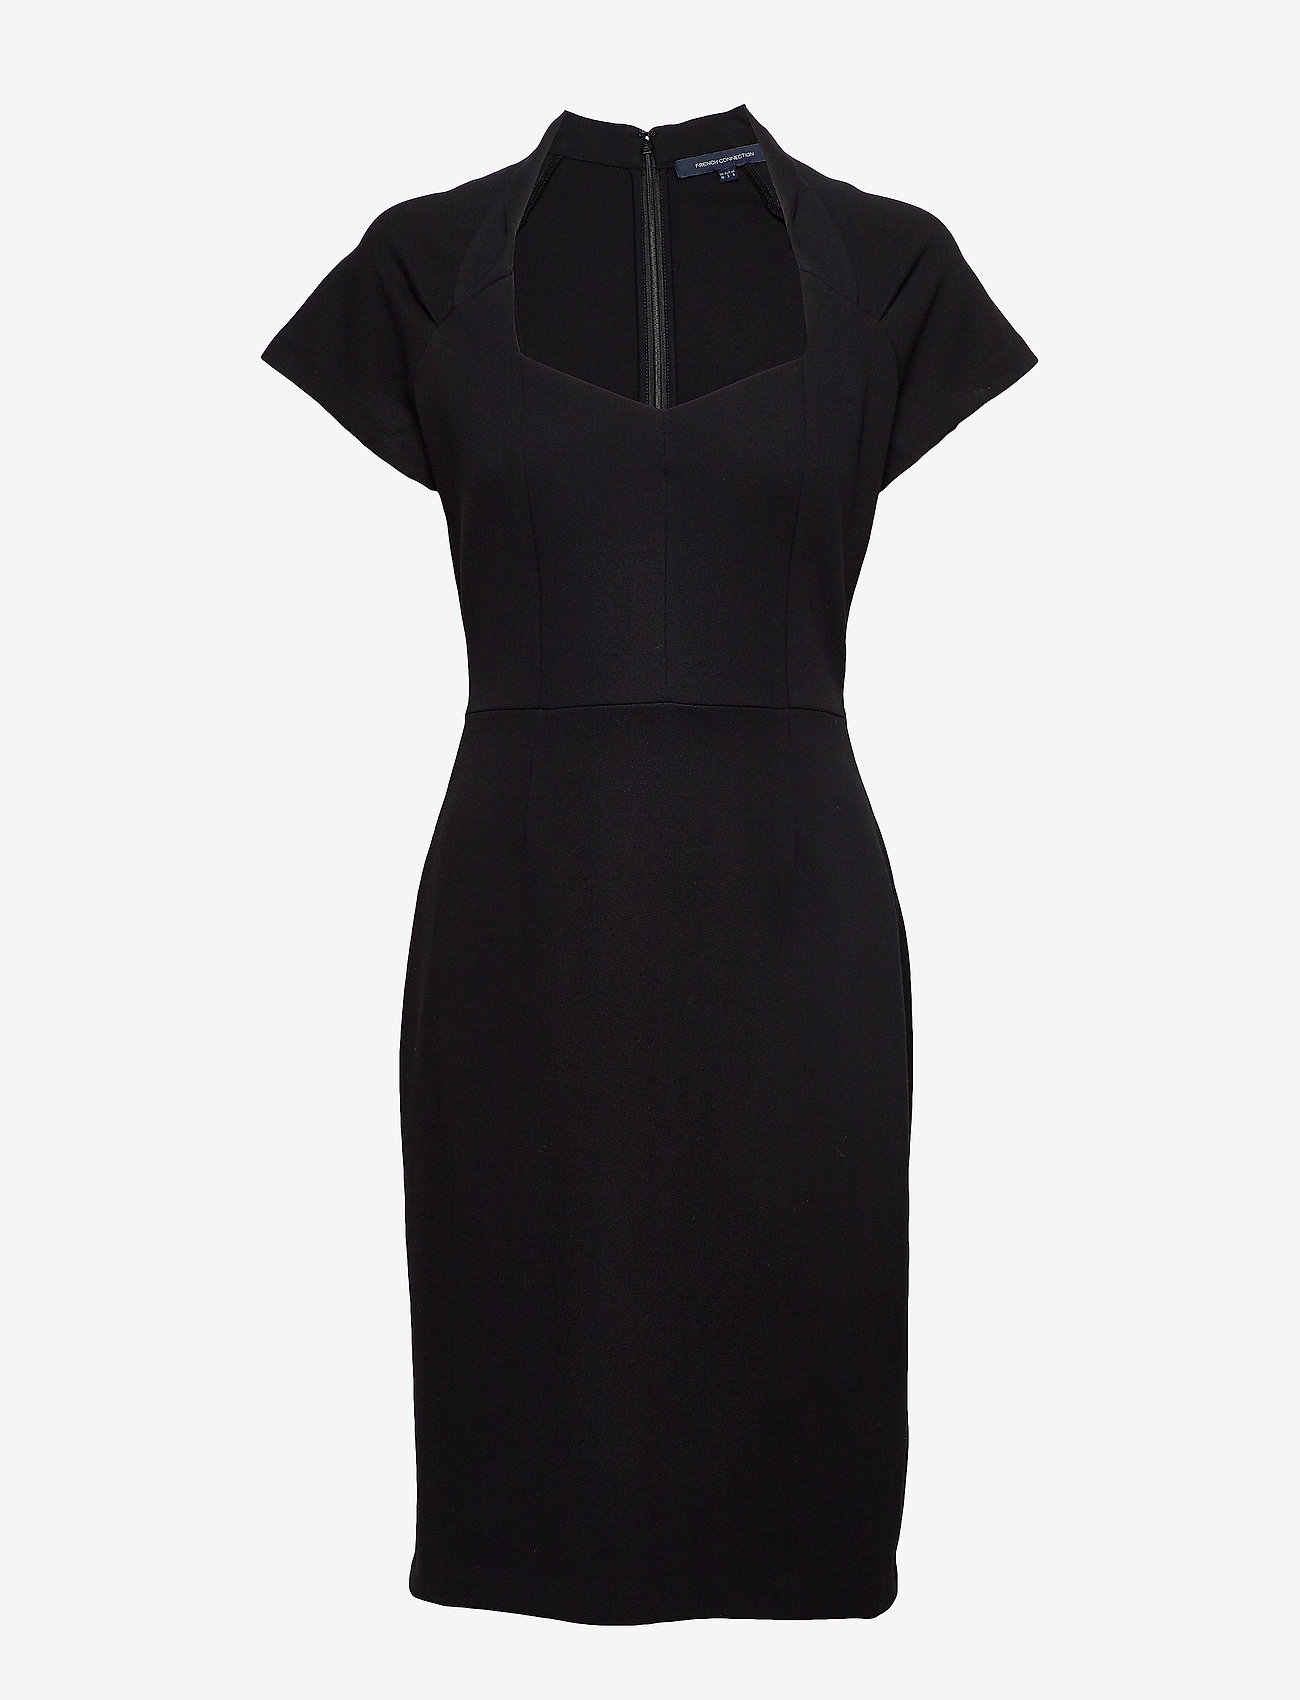 Penina Beau Jersey Bodycon Drs (Black) - French Connection 2cBhhT